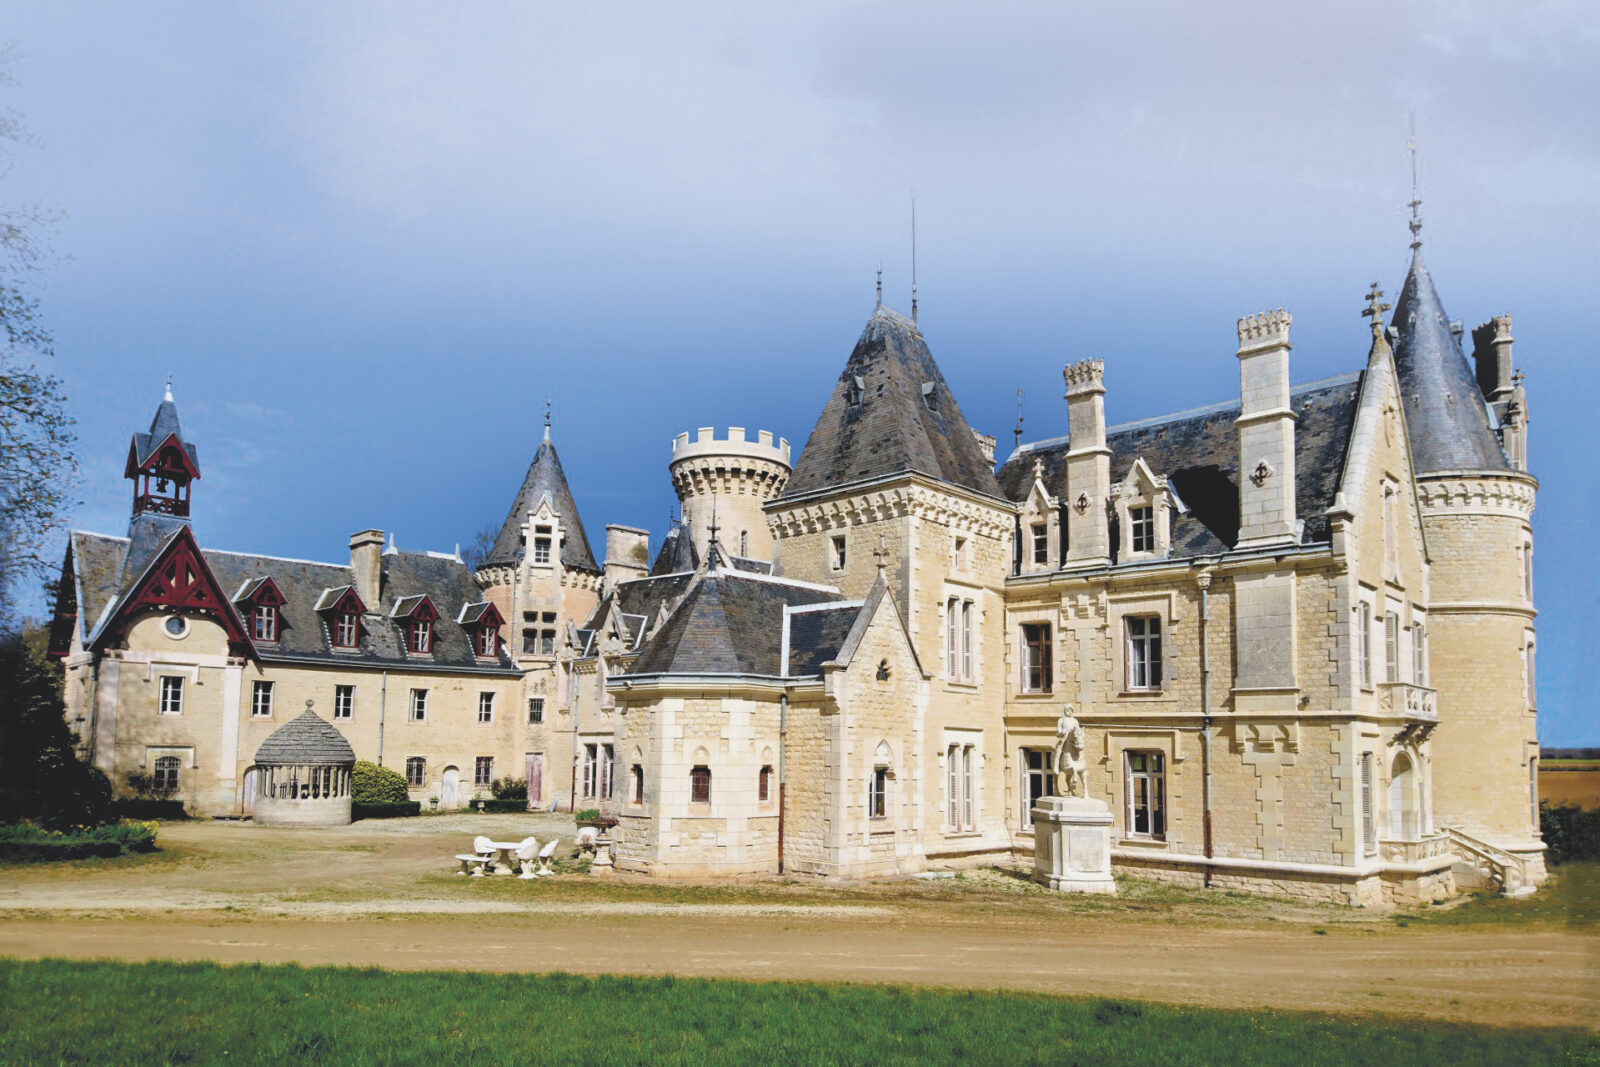 West of France – 19th century chateau set on 32 acres